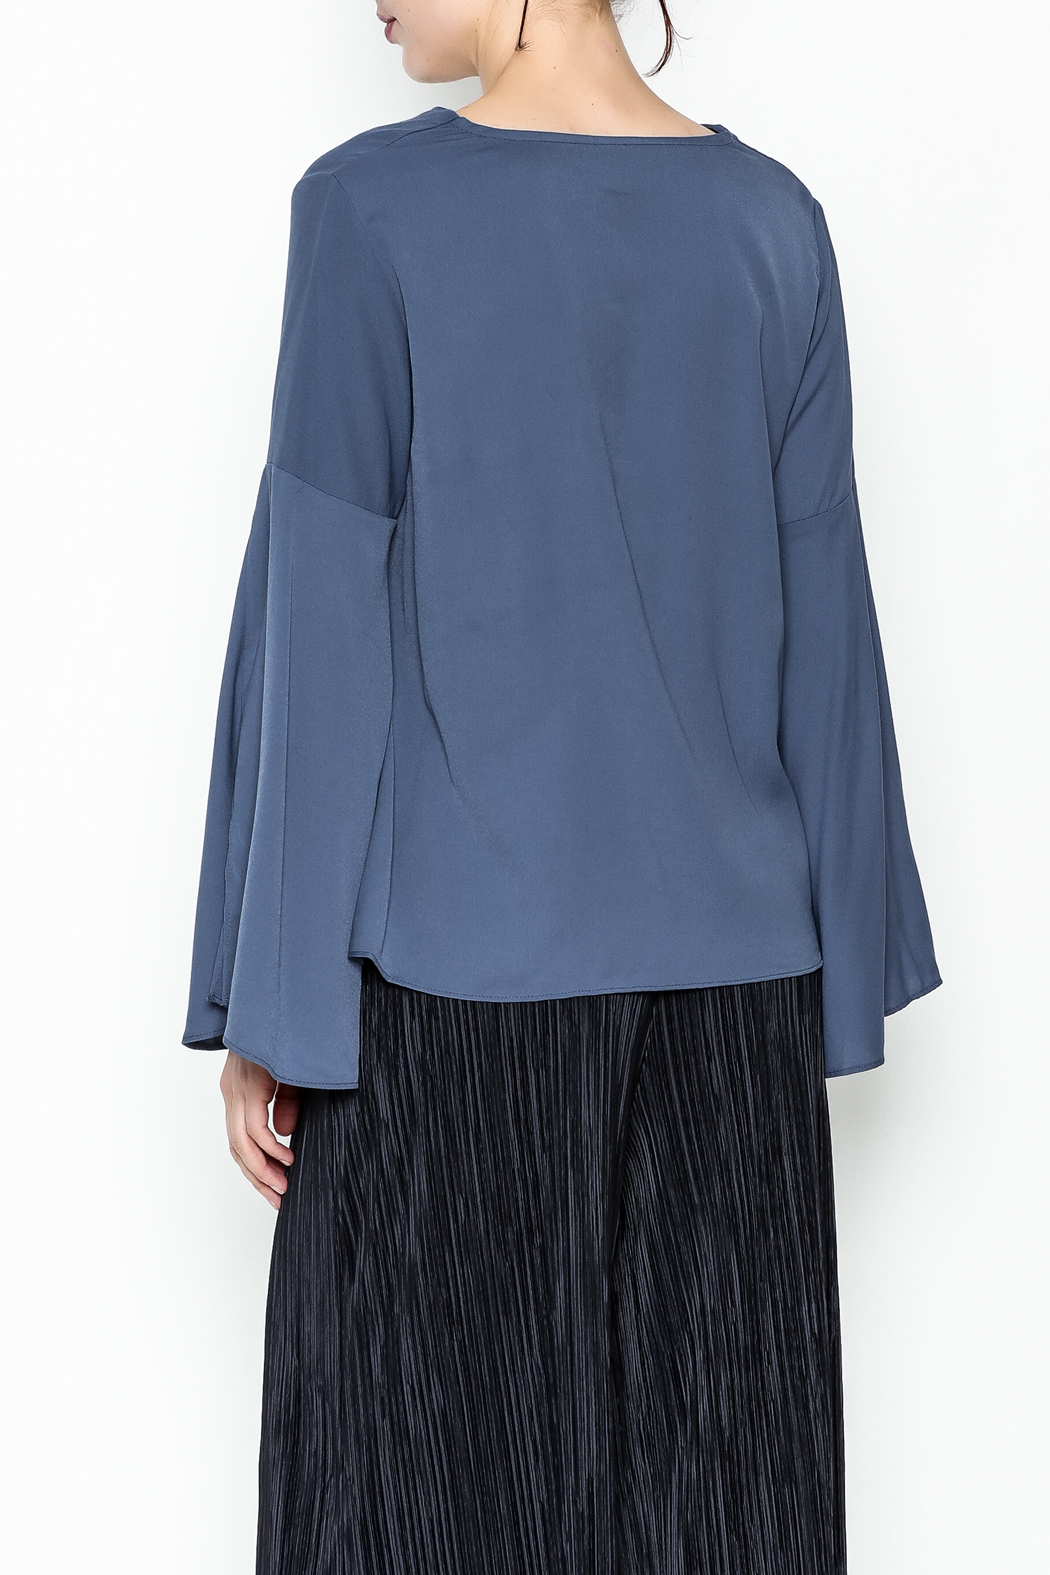 Pinkyotto Bell Sleeve Blouse - Back Cropped Image